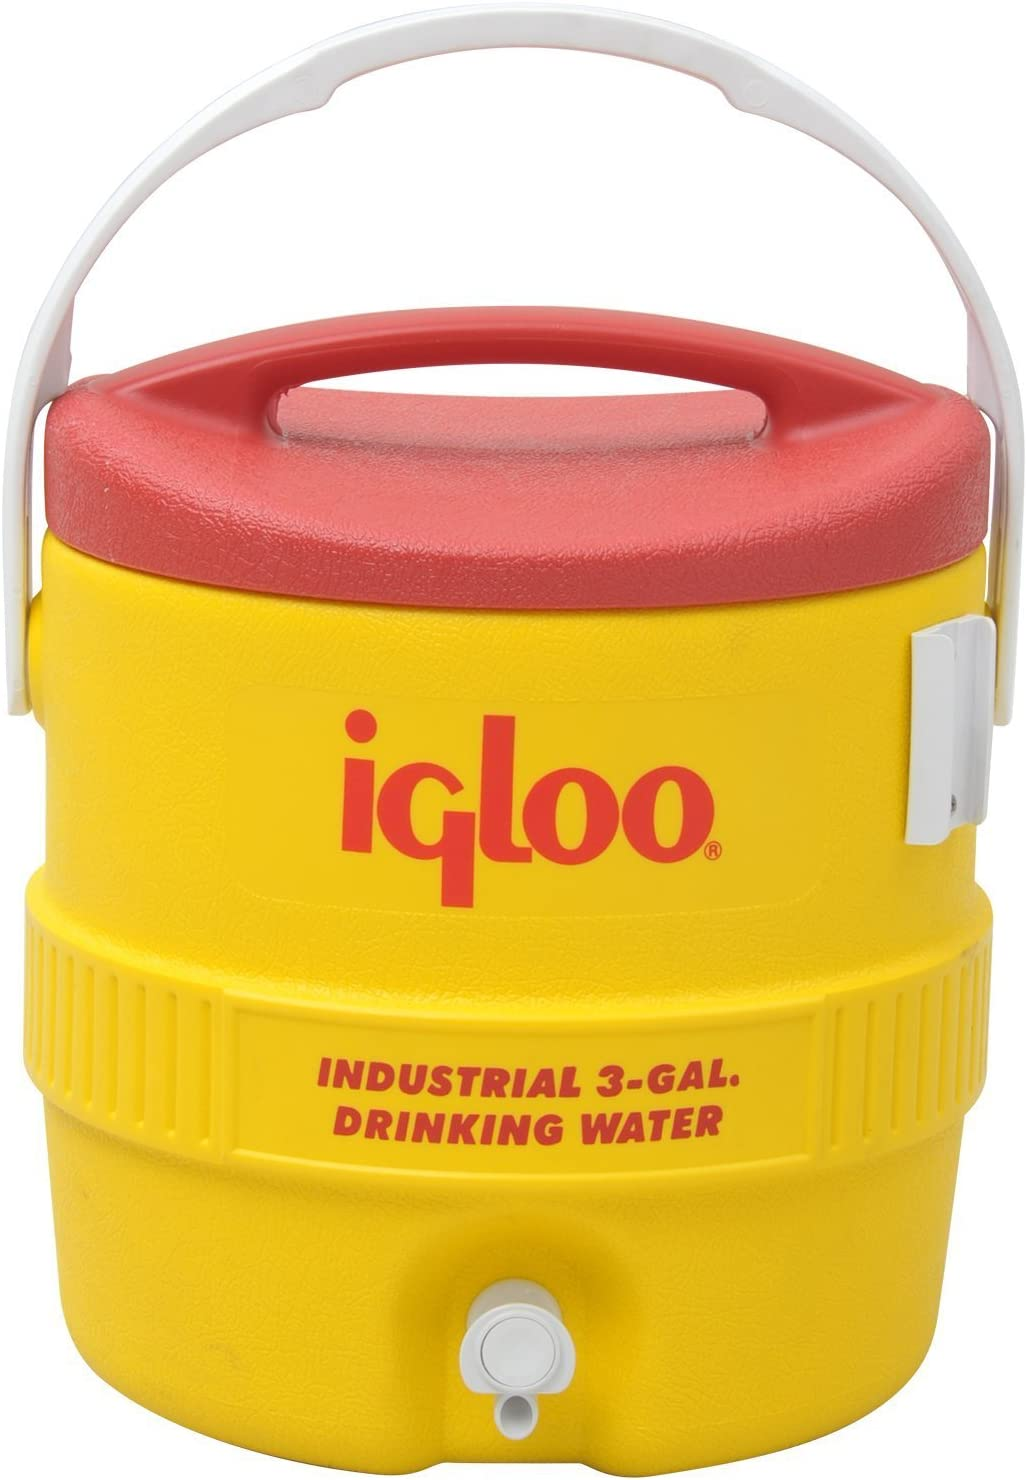 Igloo 385-431 400 Series Coolers, 3 gal, Red/Yellow